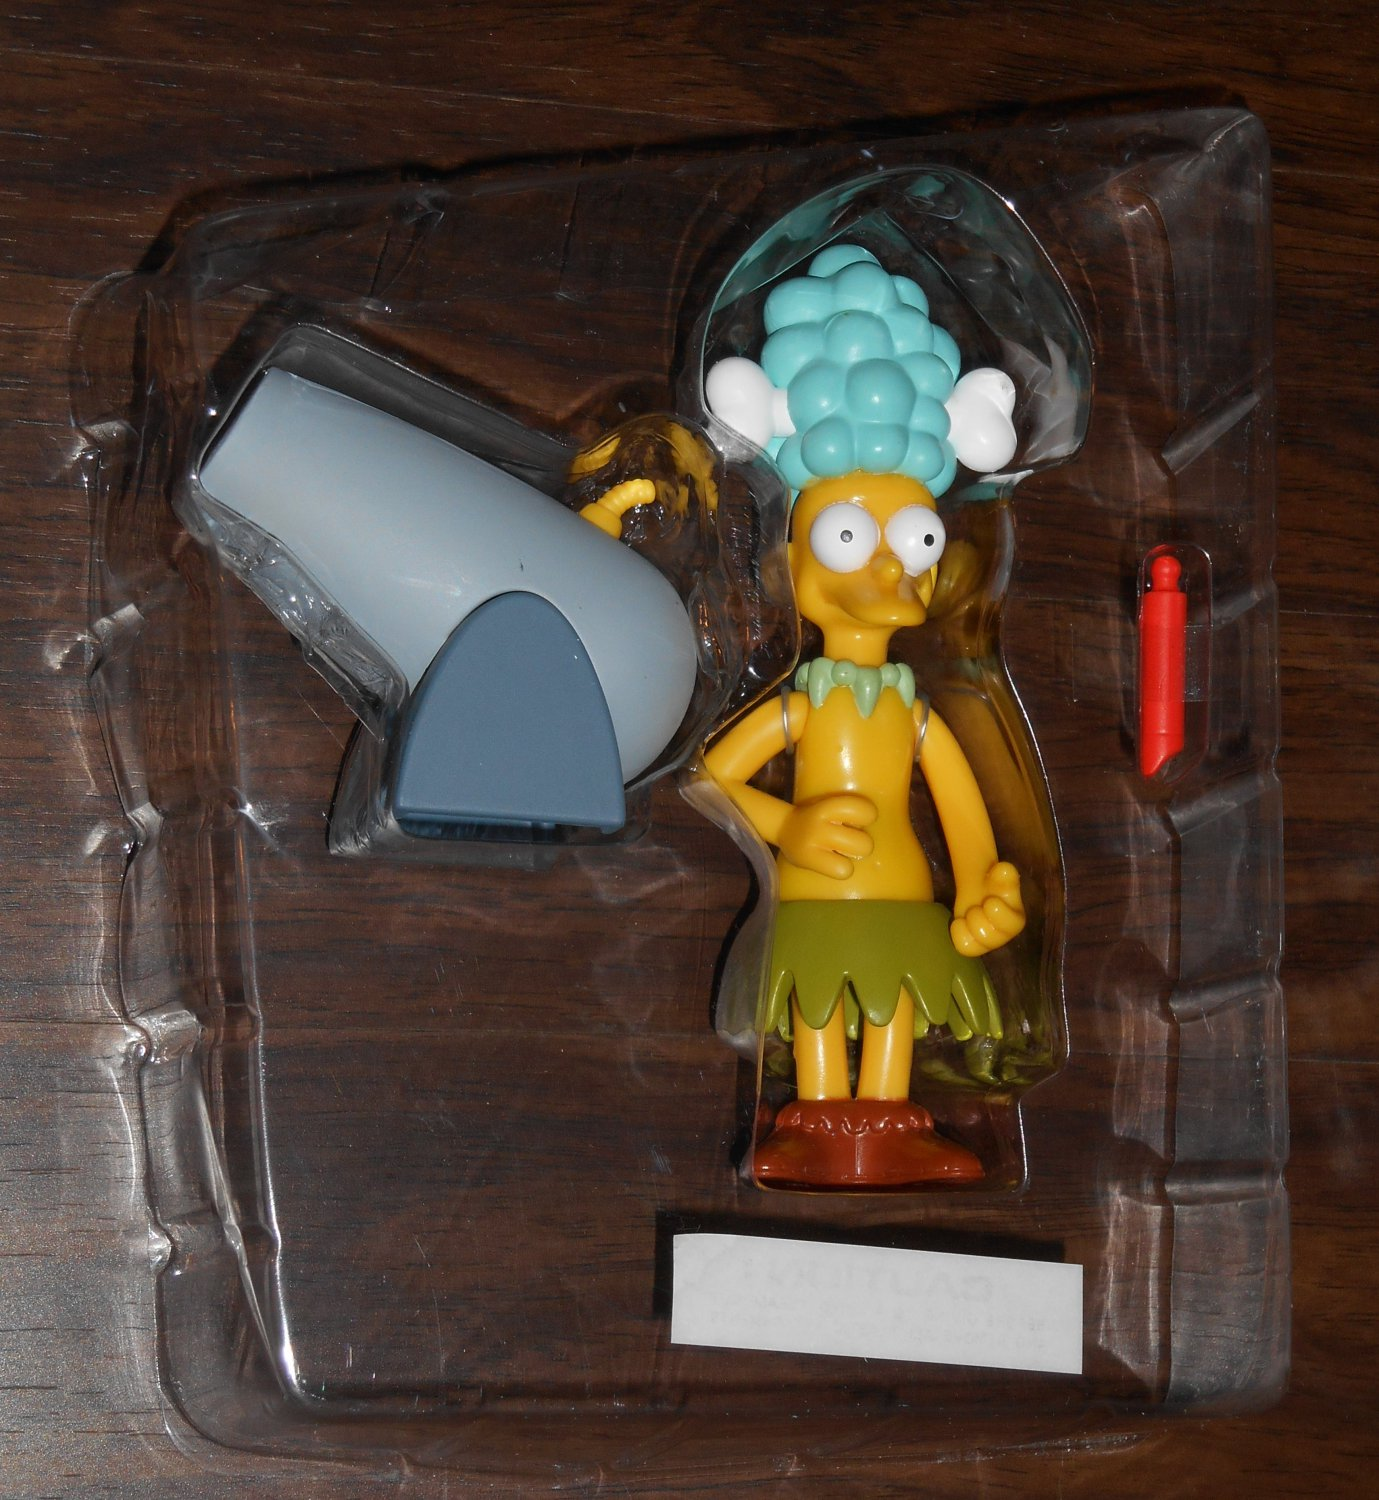 Sideshow Mel Series 5 WOS Interactive Figure The Simpsons Fox TV Show Playmates Toys